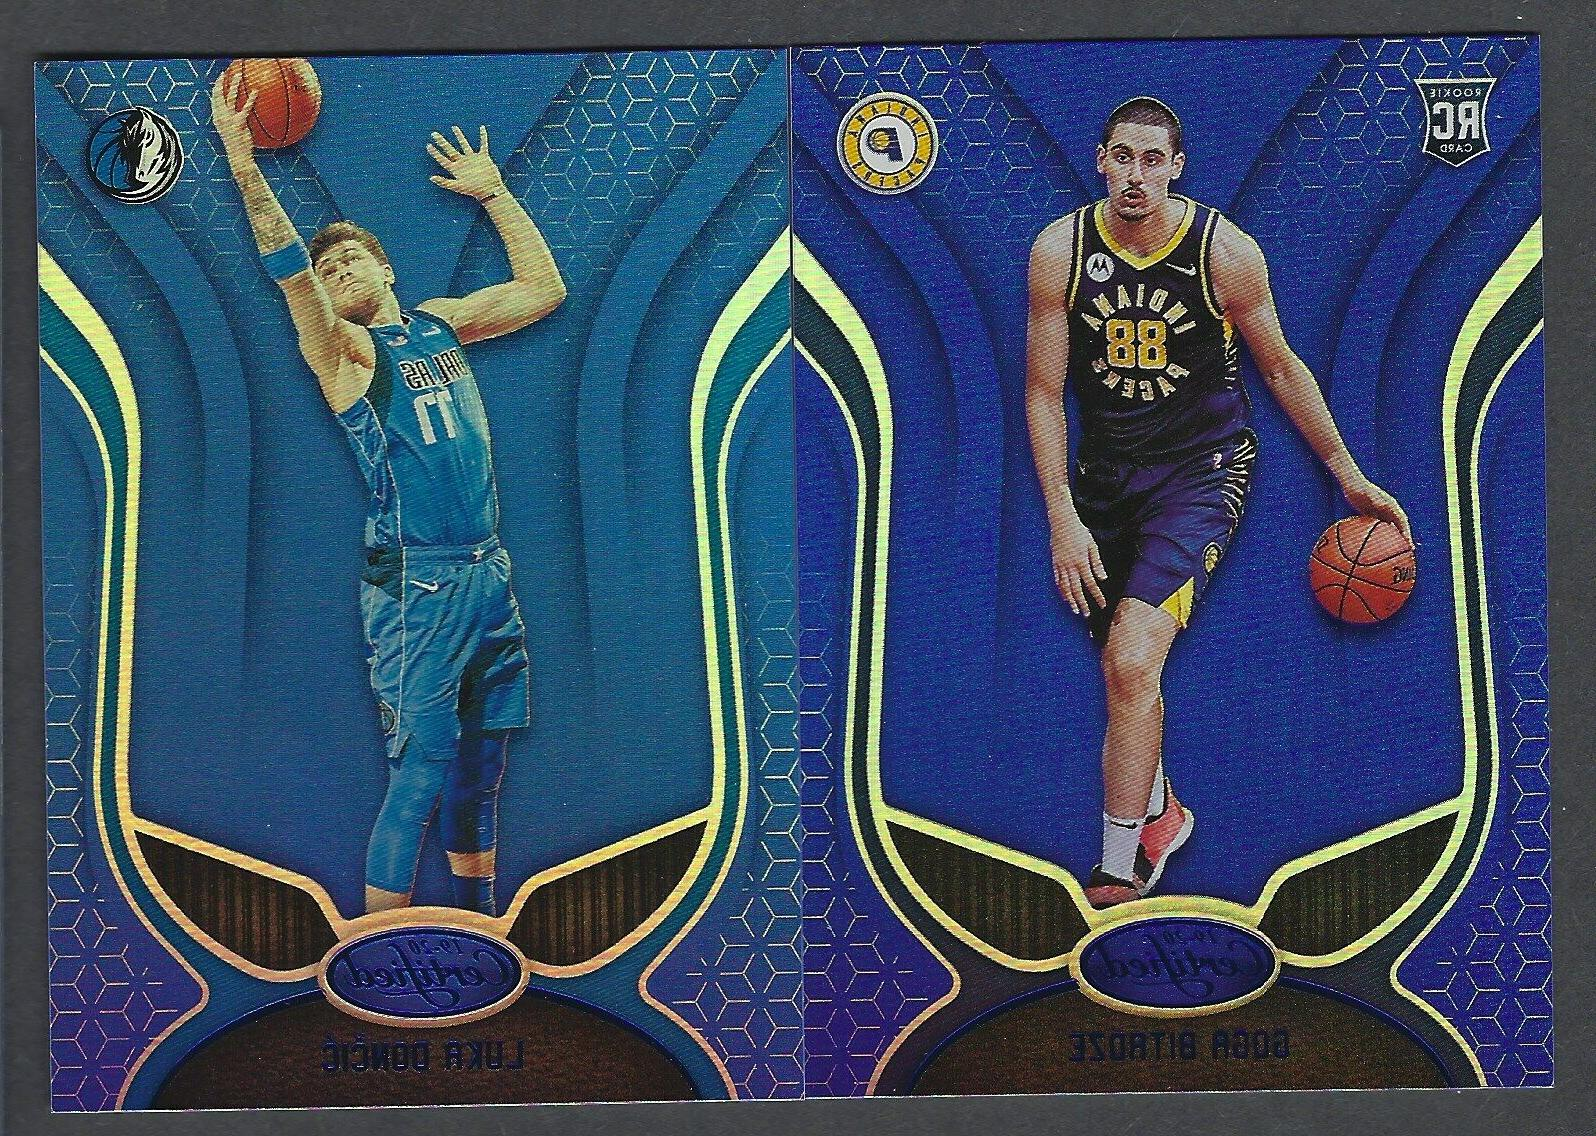 2019 20 panini certified blue mirror parallels